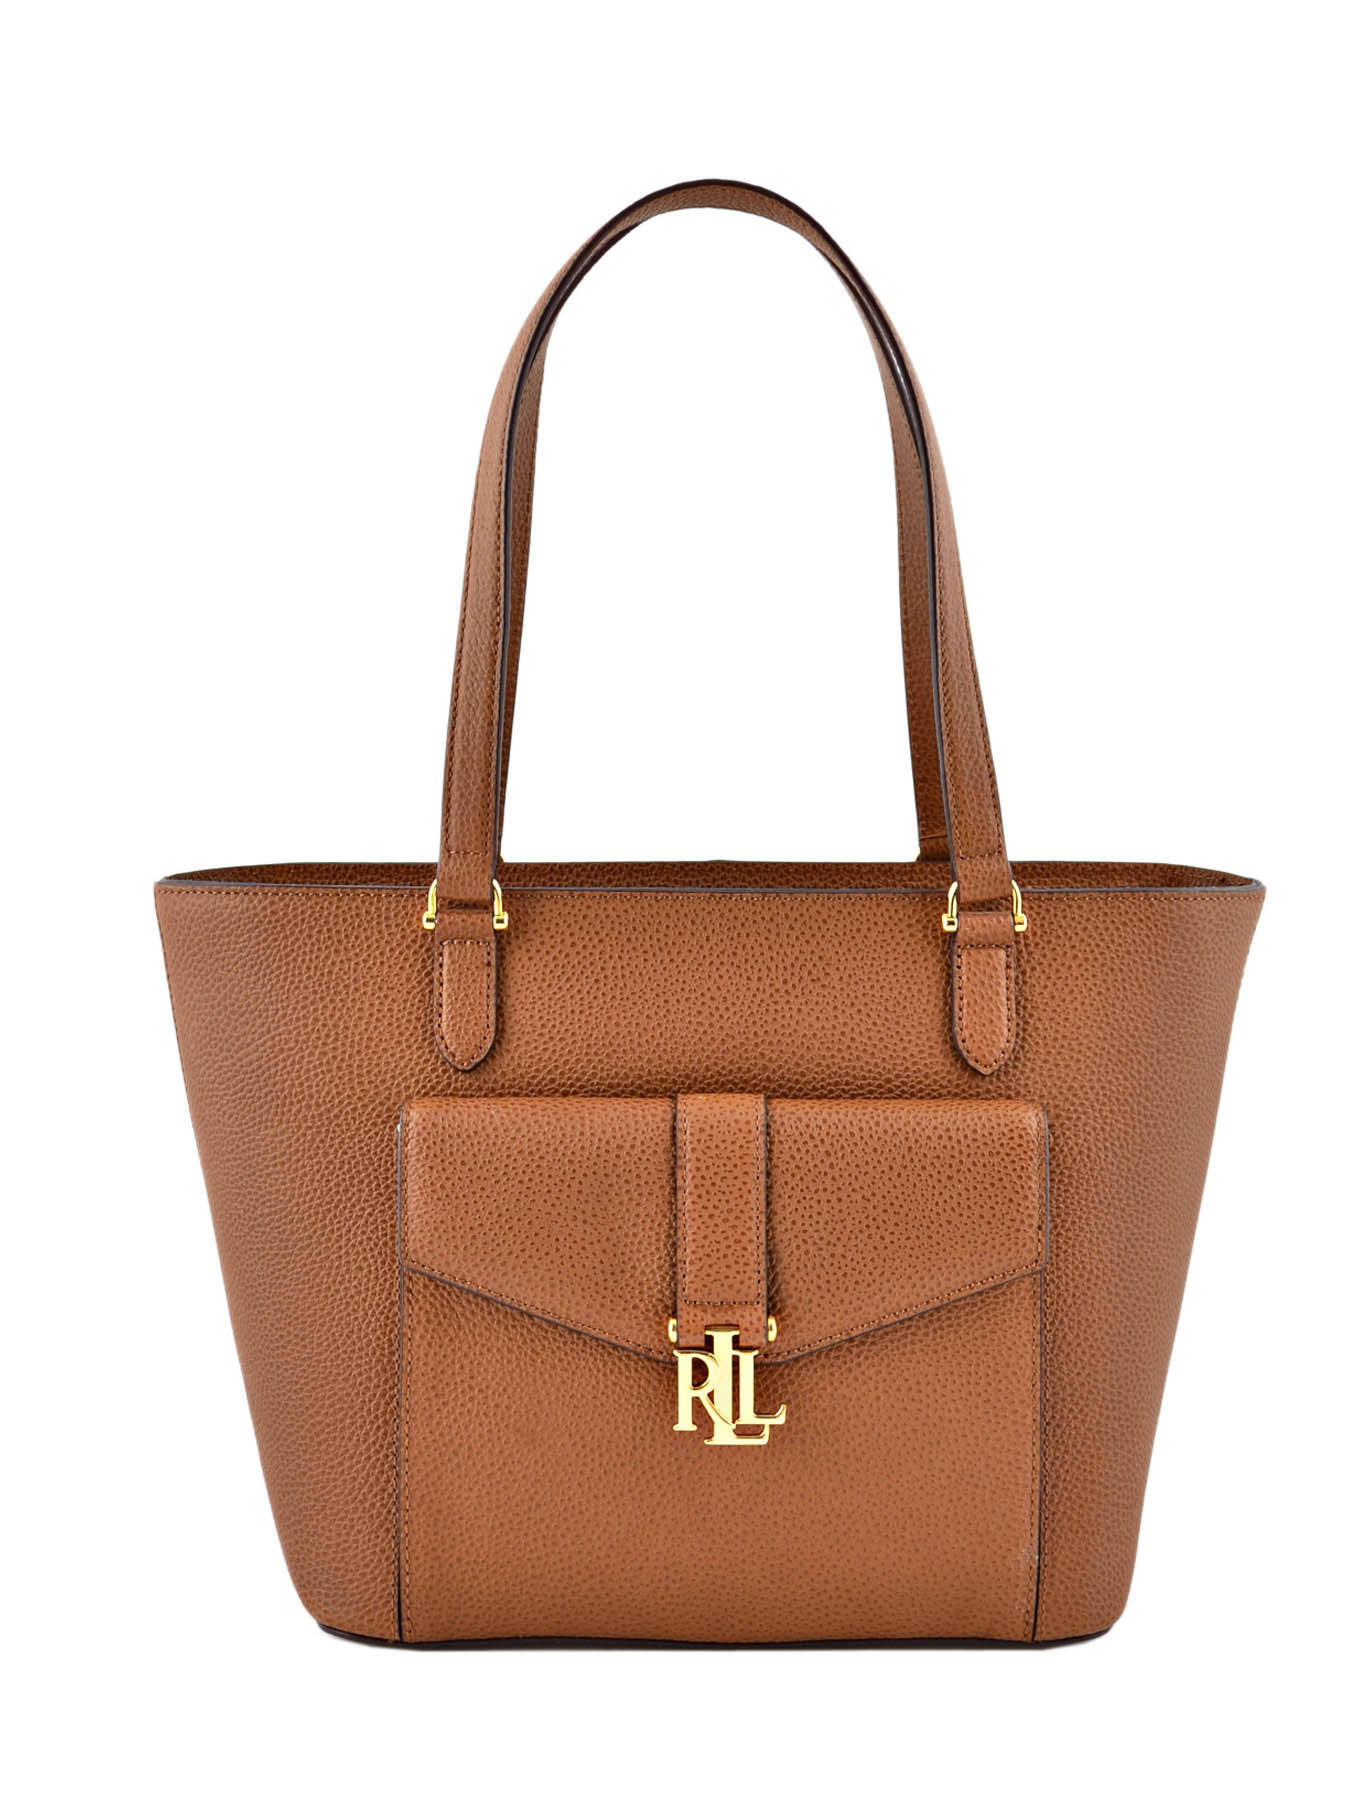 Sac Porté épaule Carrington Cuir Lauren ralph lauren Marron carrington N91XZAFV